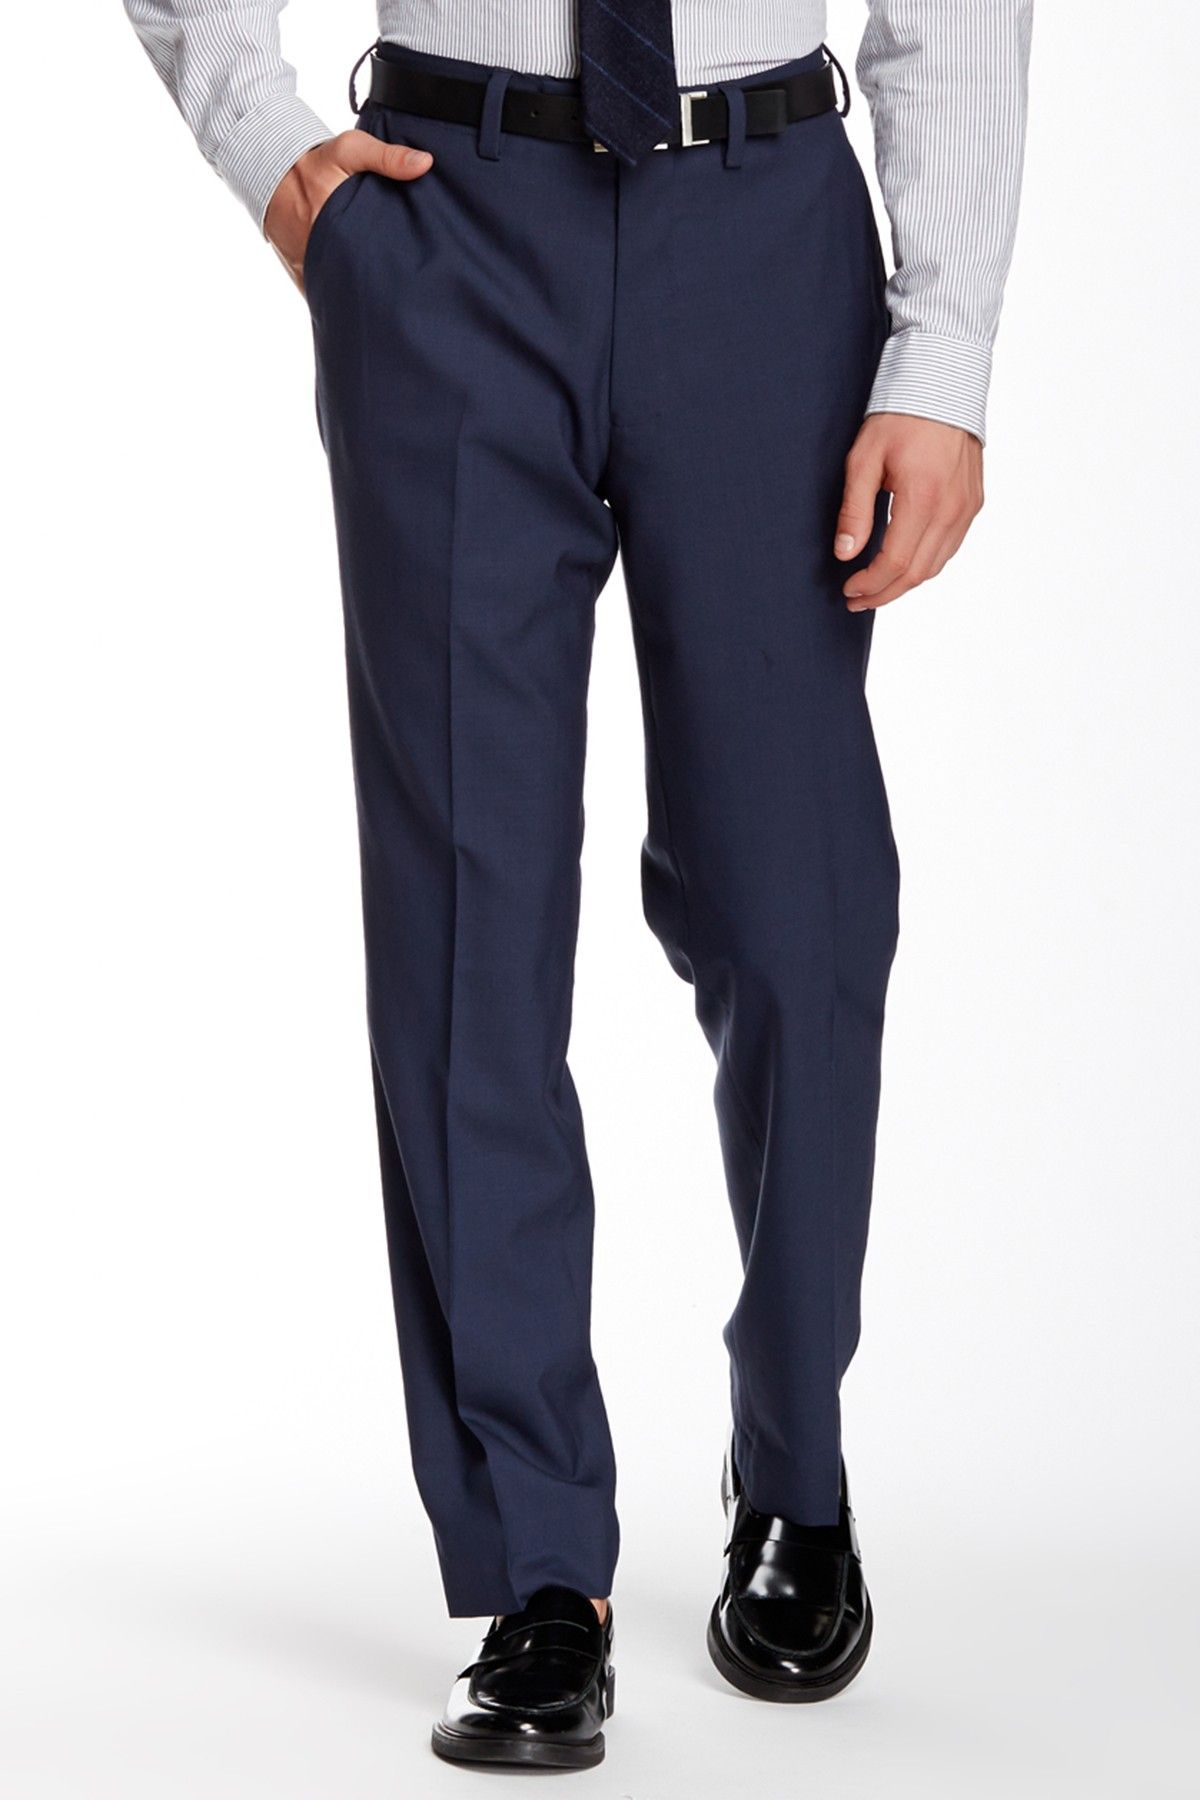 Try our NEW poly/wool hidden comfort modern fit pants. When both style and comfort matter, Louis Raphael is the clear choice.